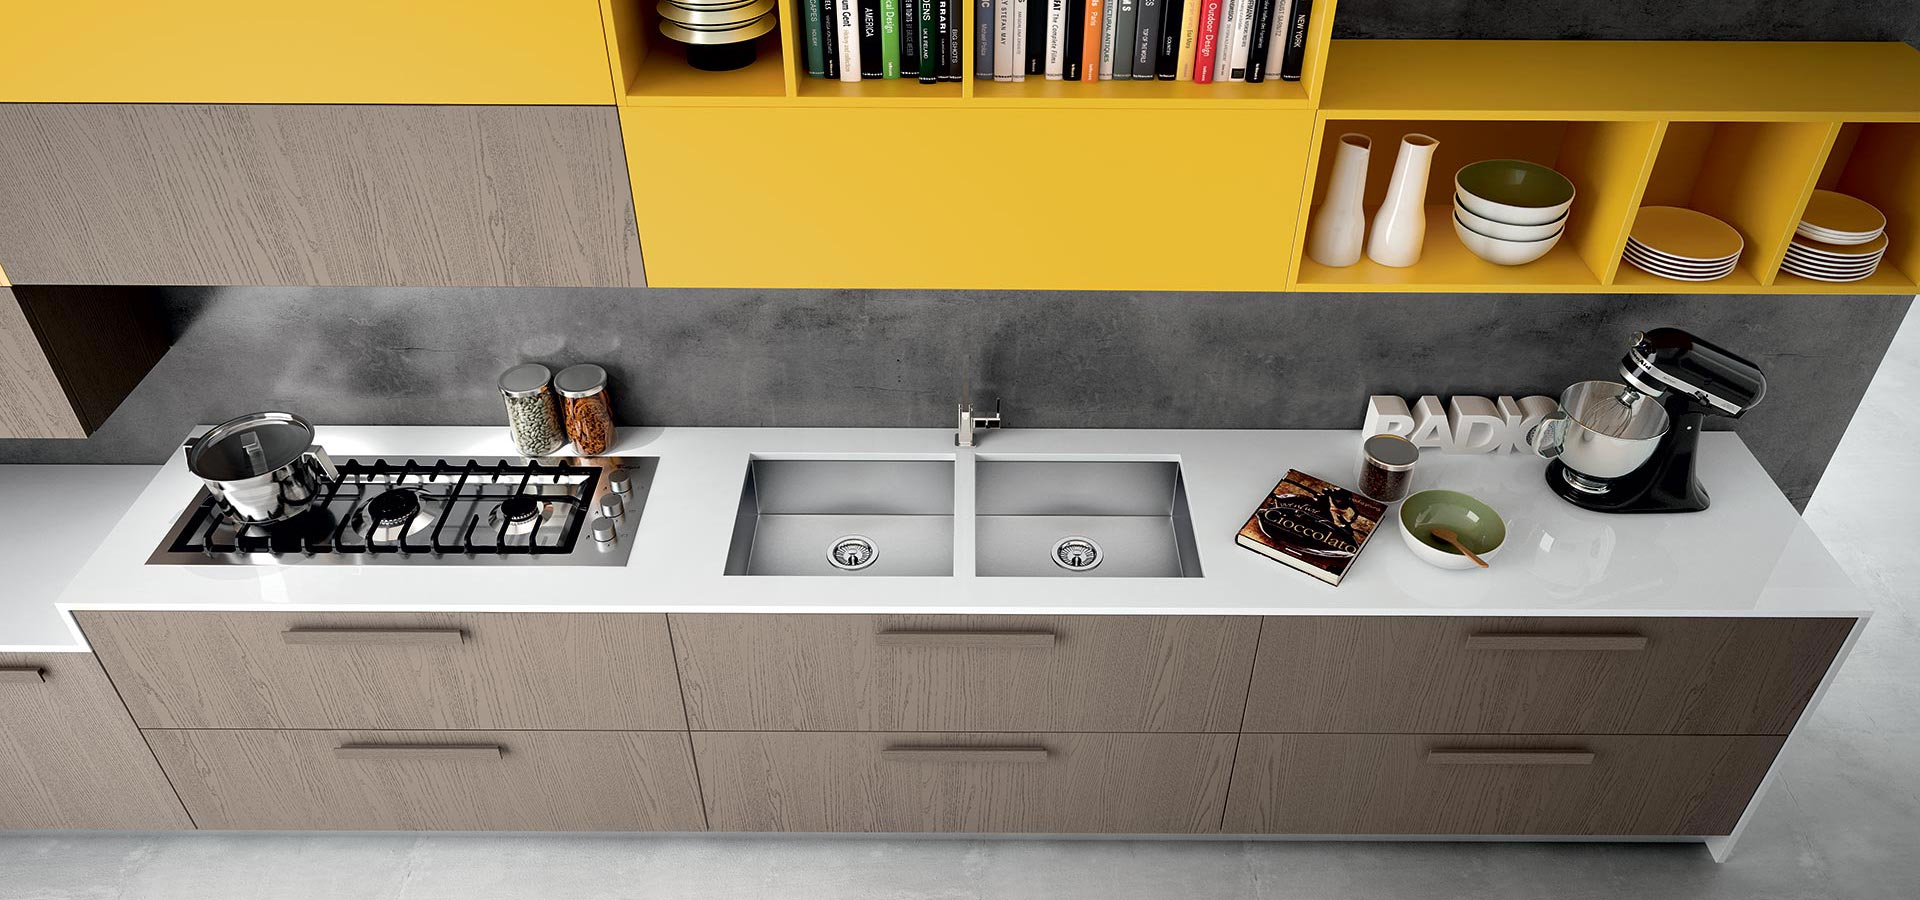 add accent units in vibrant yellow or hot orange for added 60's style…